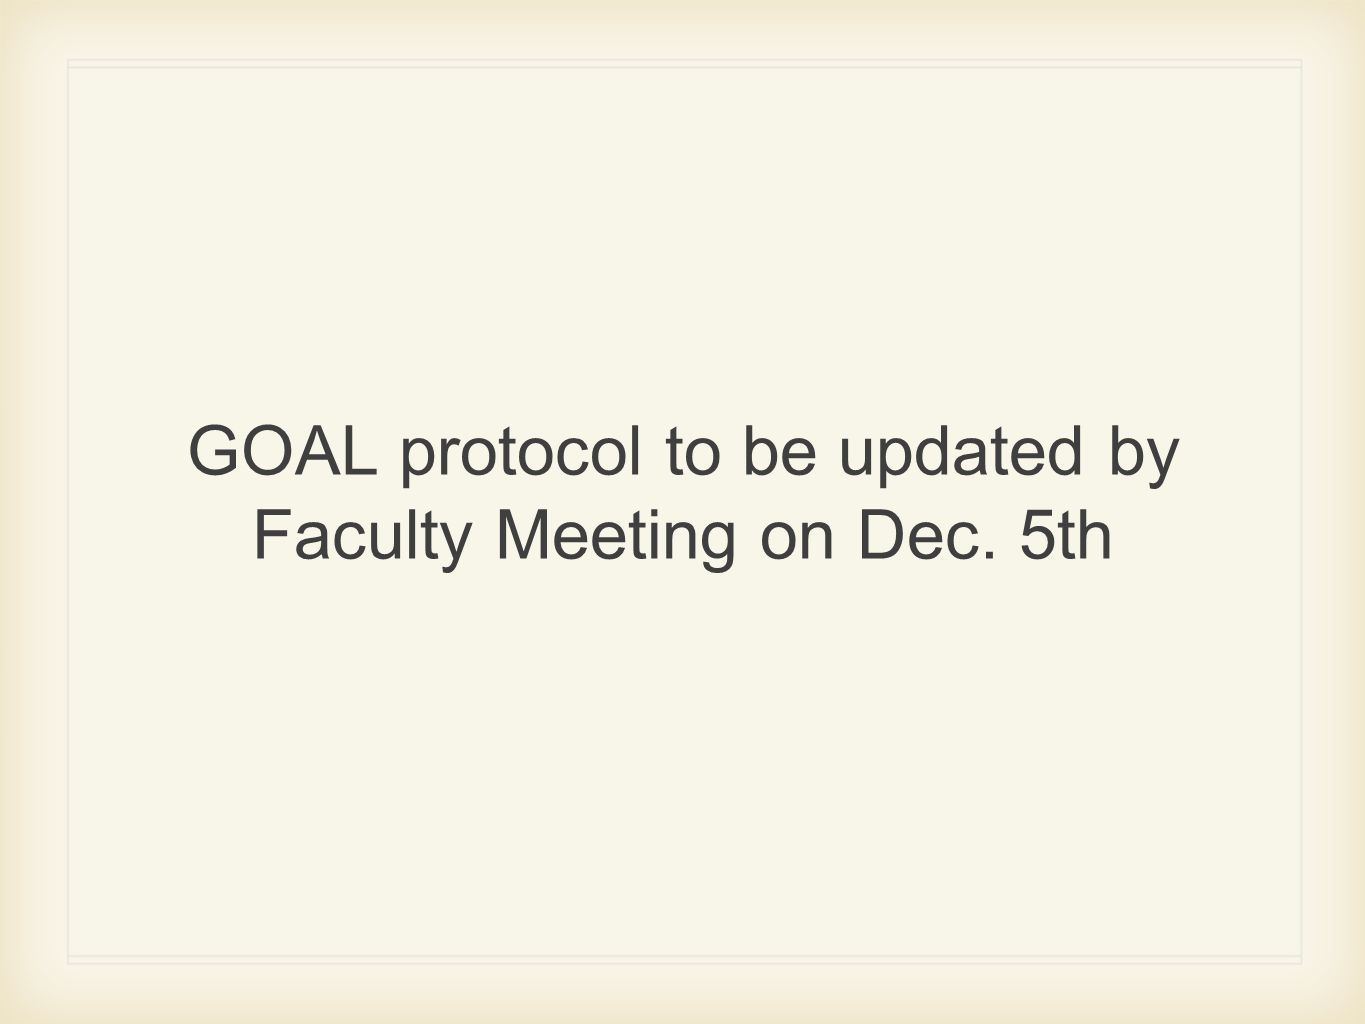 GOAL protocol to be updated by Faculty Meeting on Dec. 5th